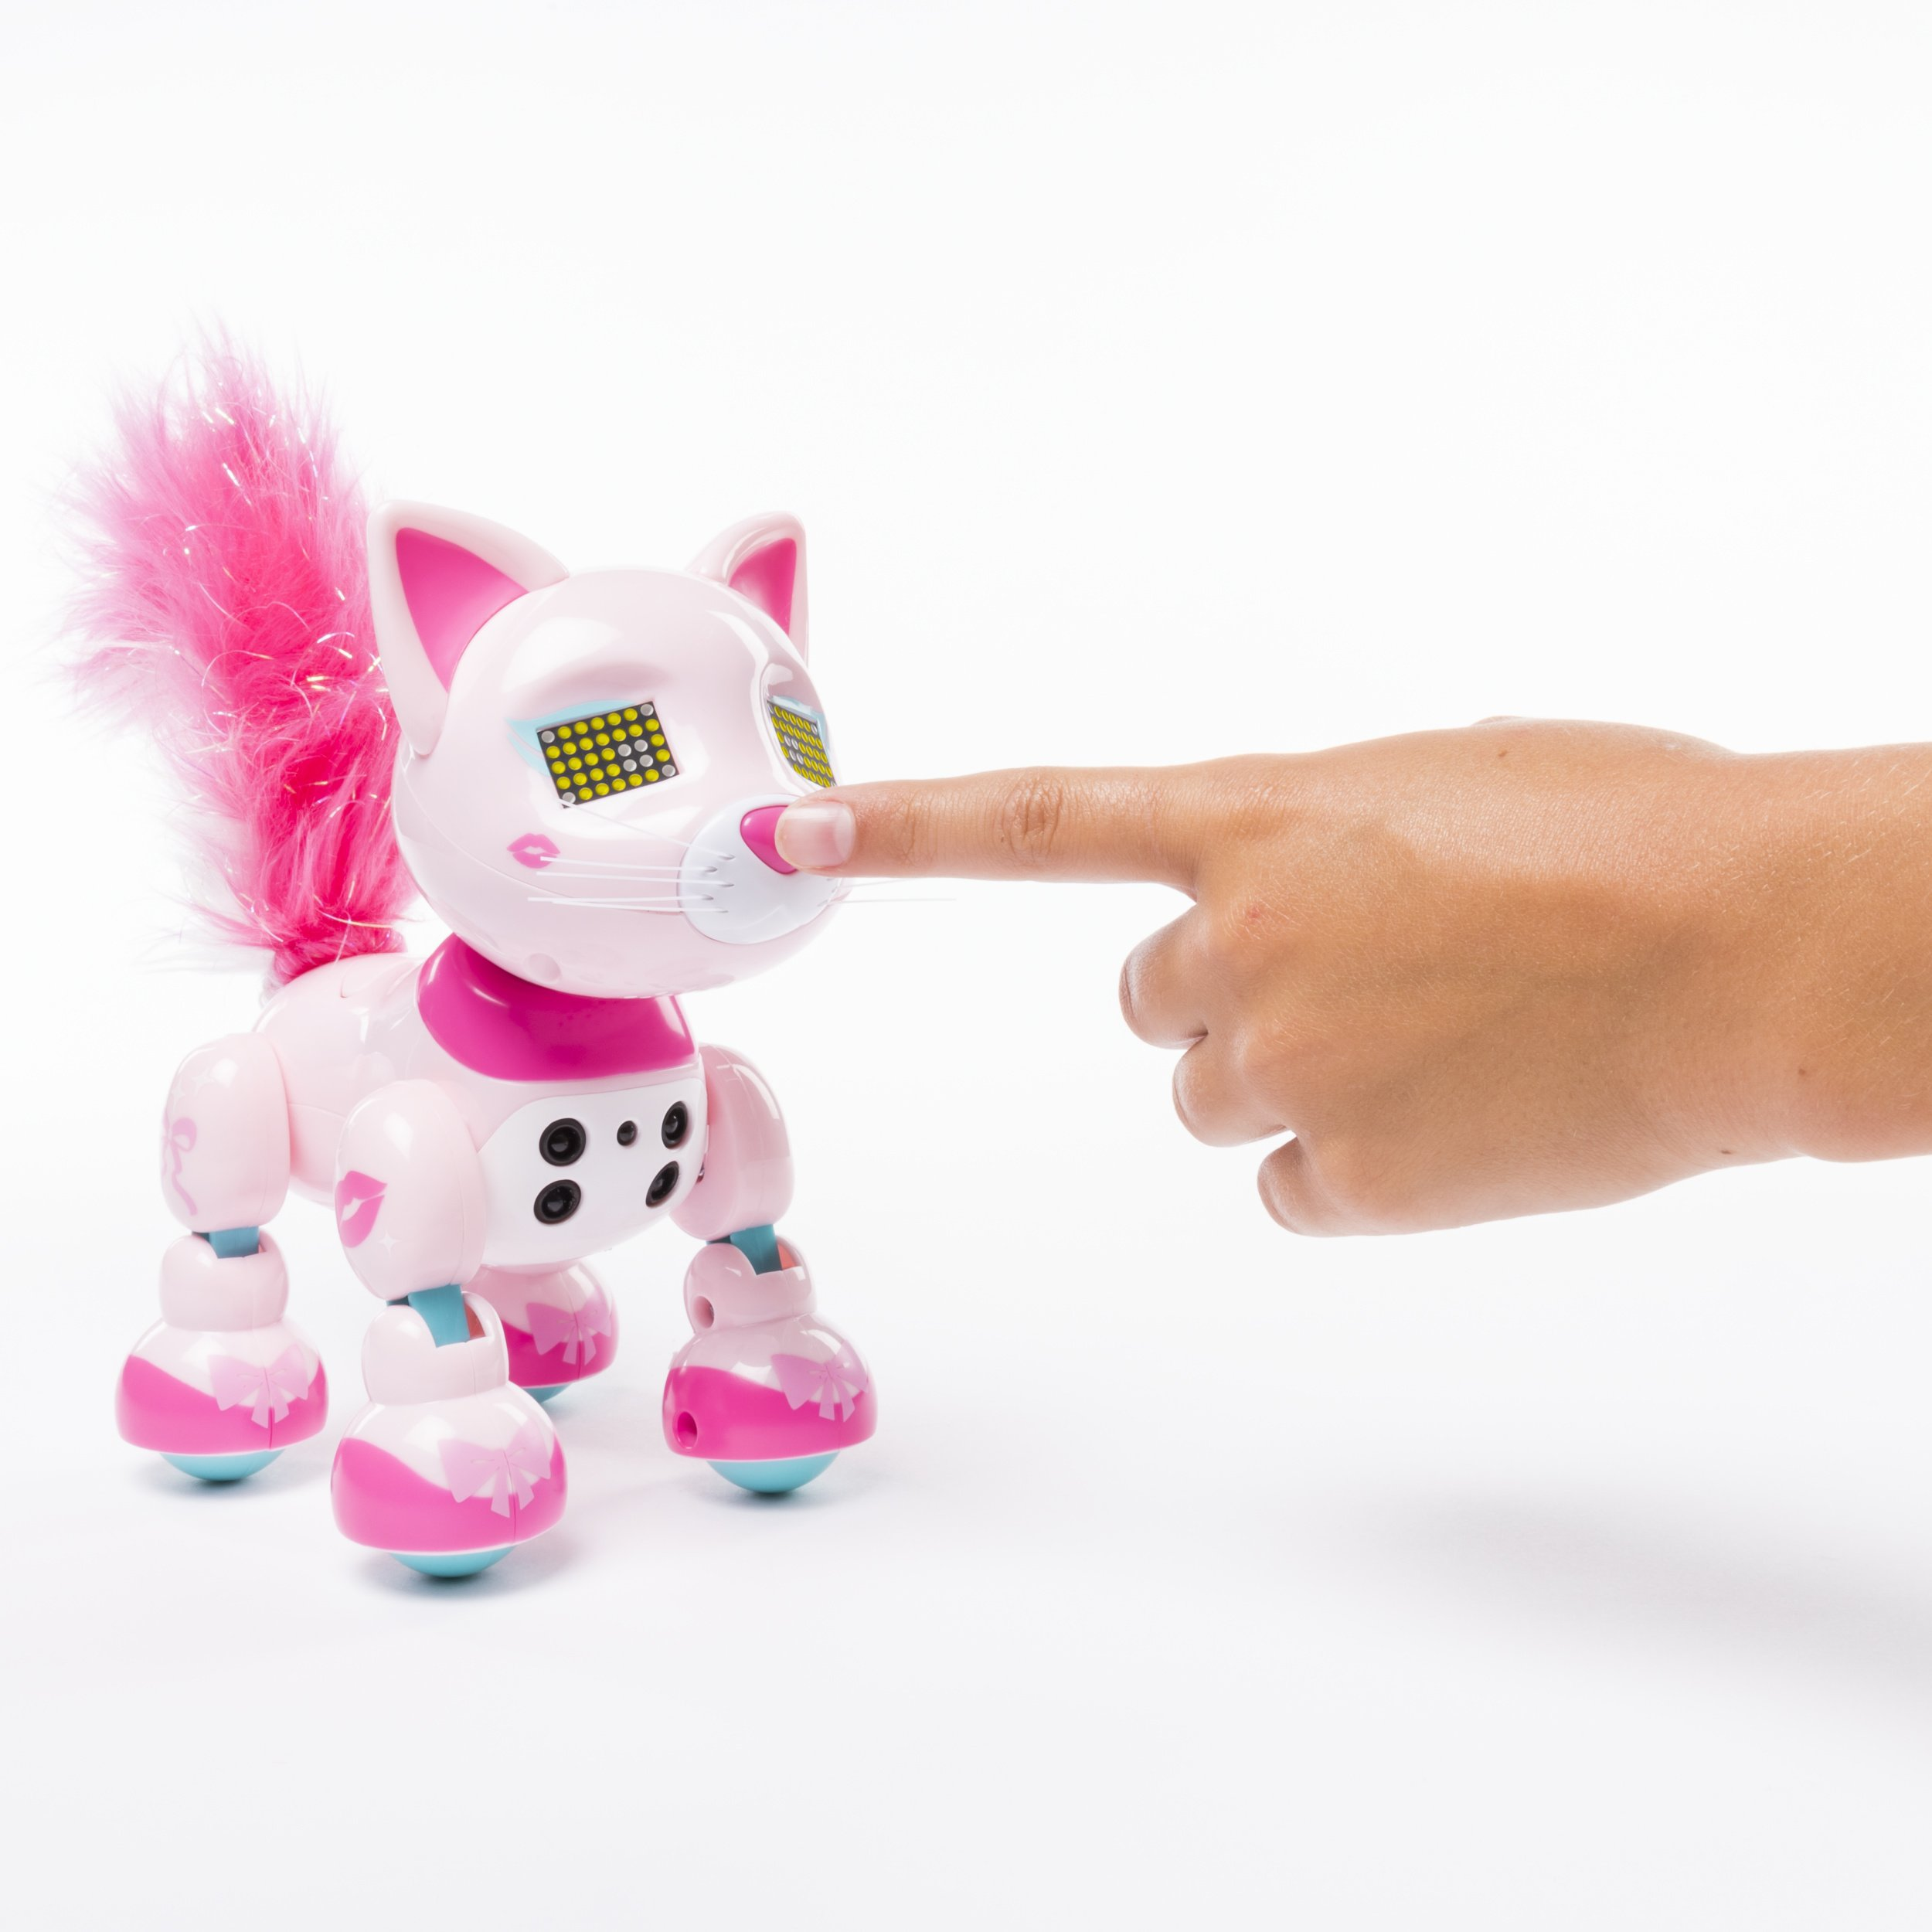 Zoomer Meowzies, Chic, Interactive Kitten with Lights, Sounds and Sensors by Zoomer (Image #5)